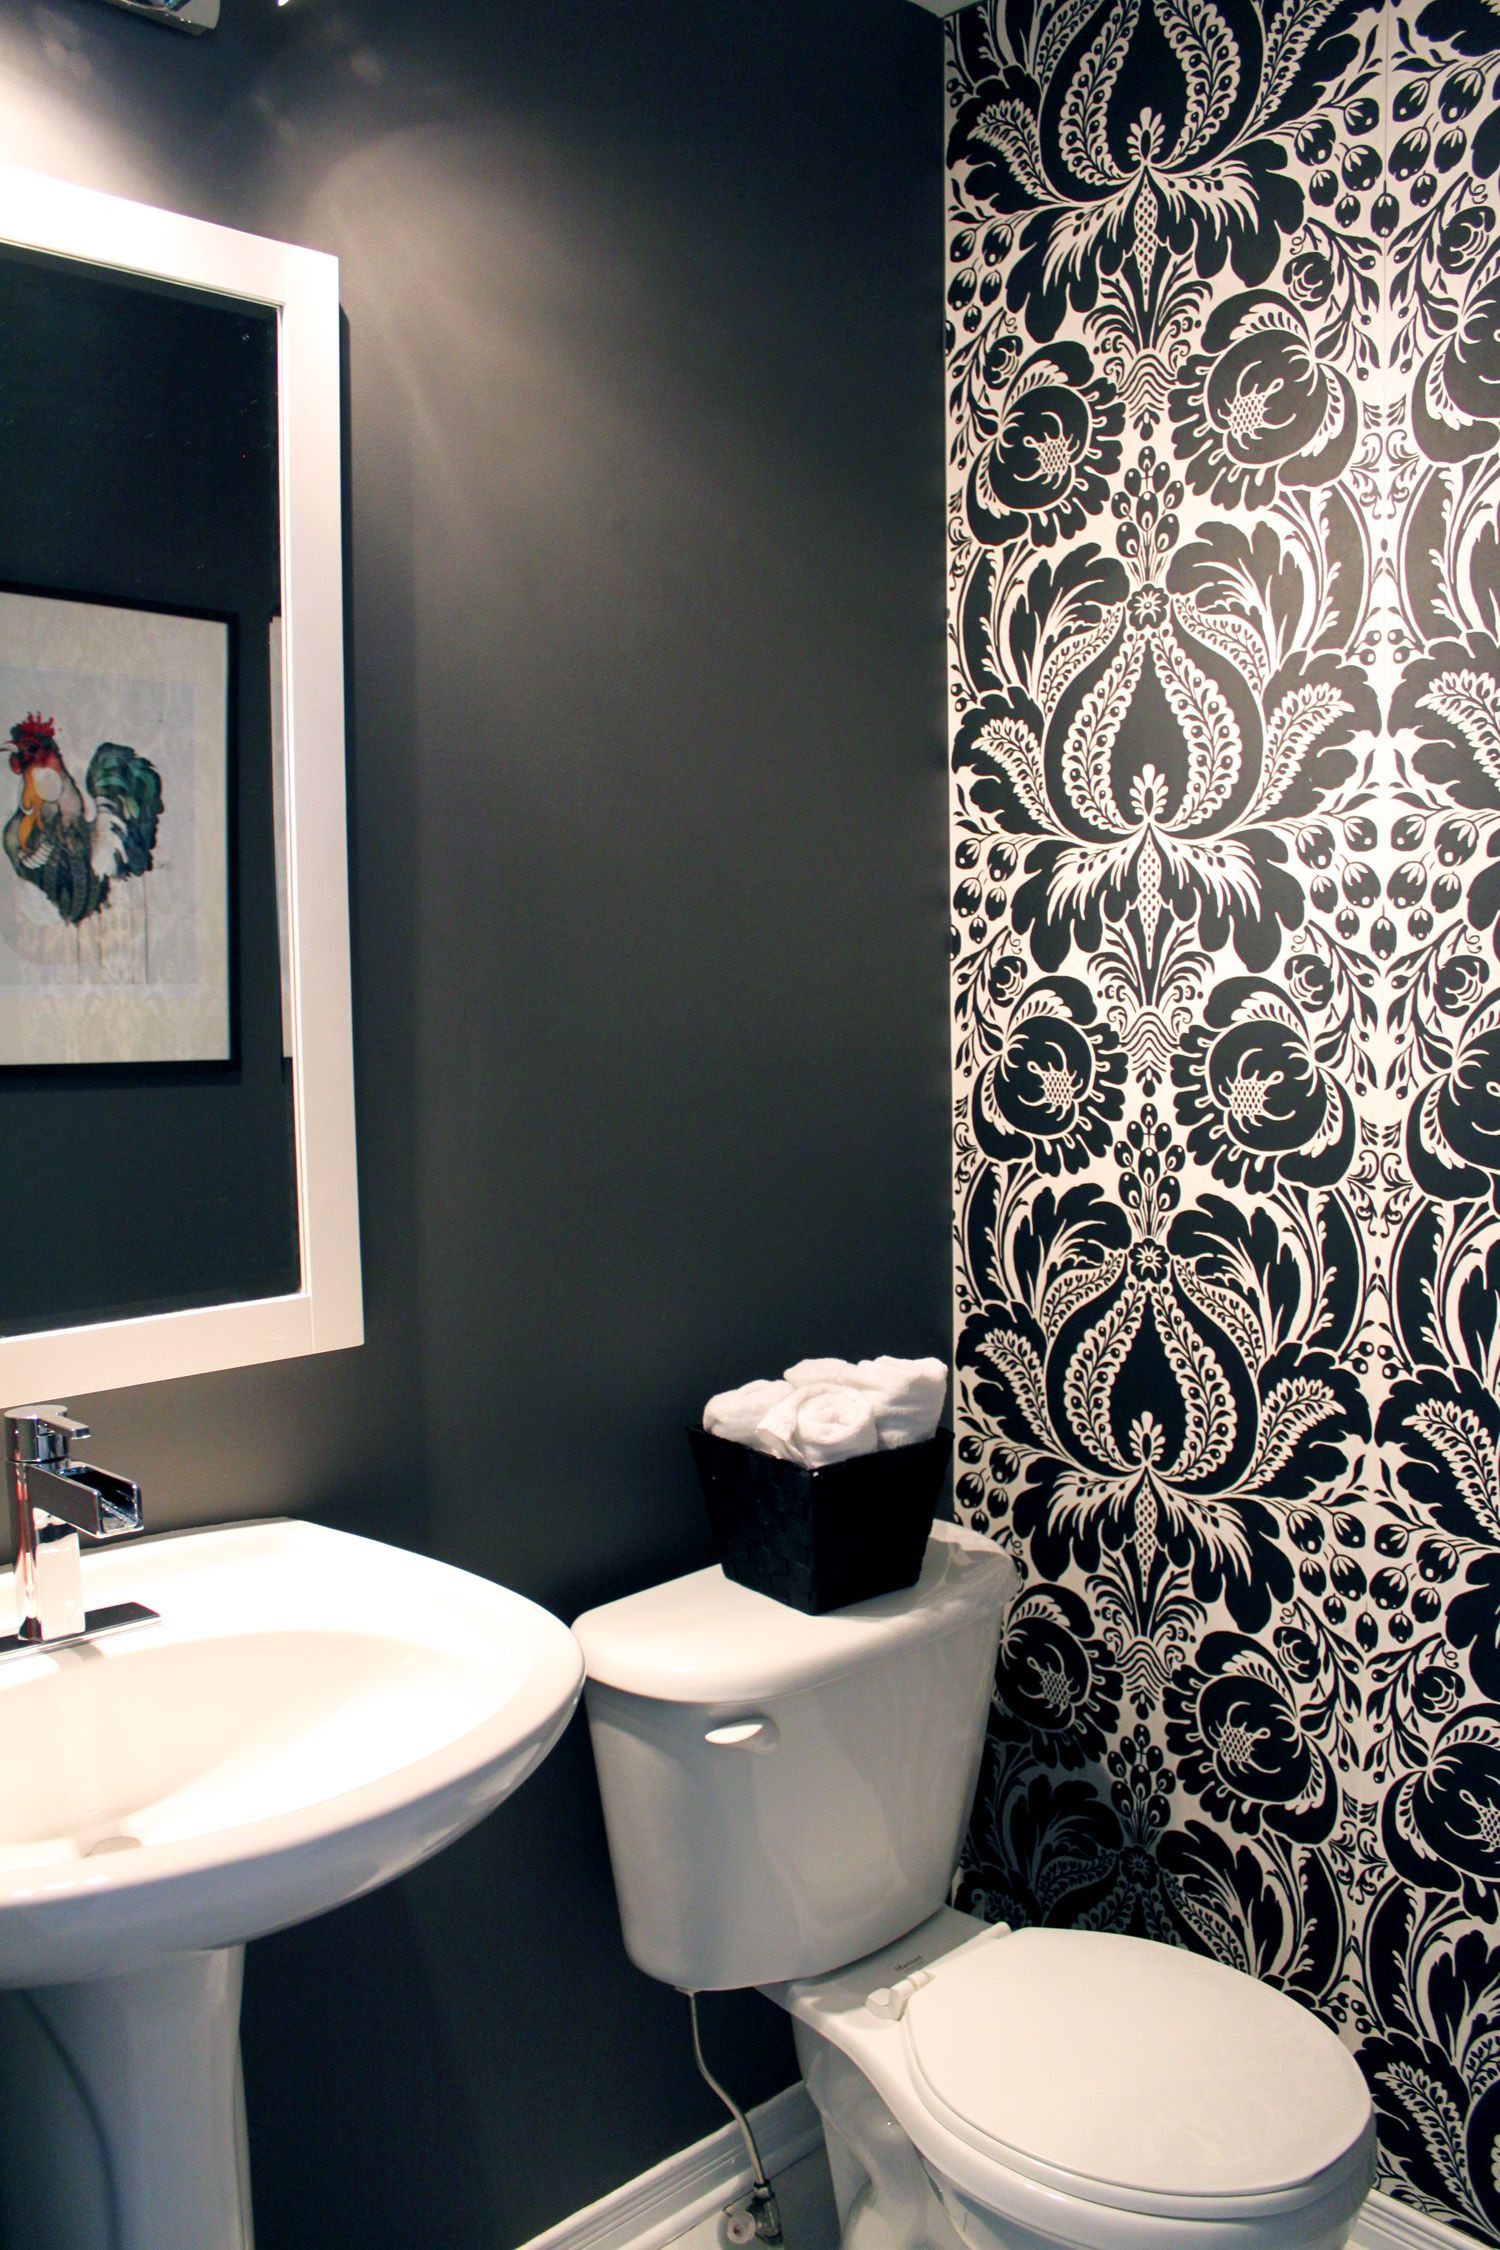 Bathroom Wallpaper Decorating Ideas Fresh I Like the Idea Of Doing 1 Wall In A Powder Room with A